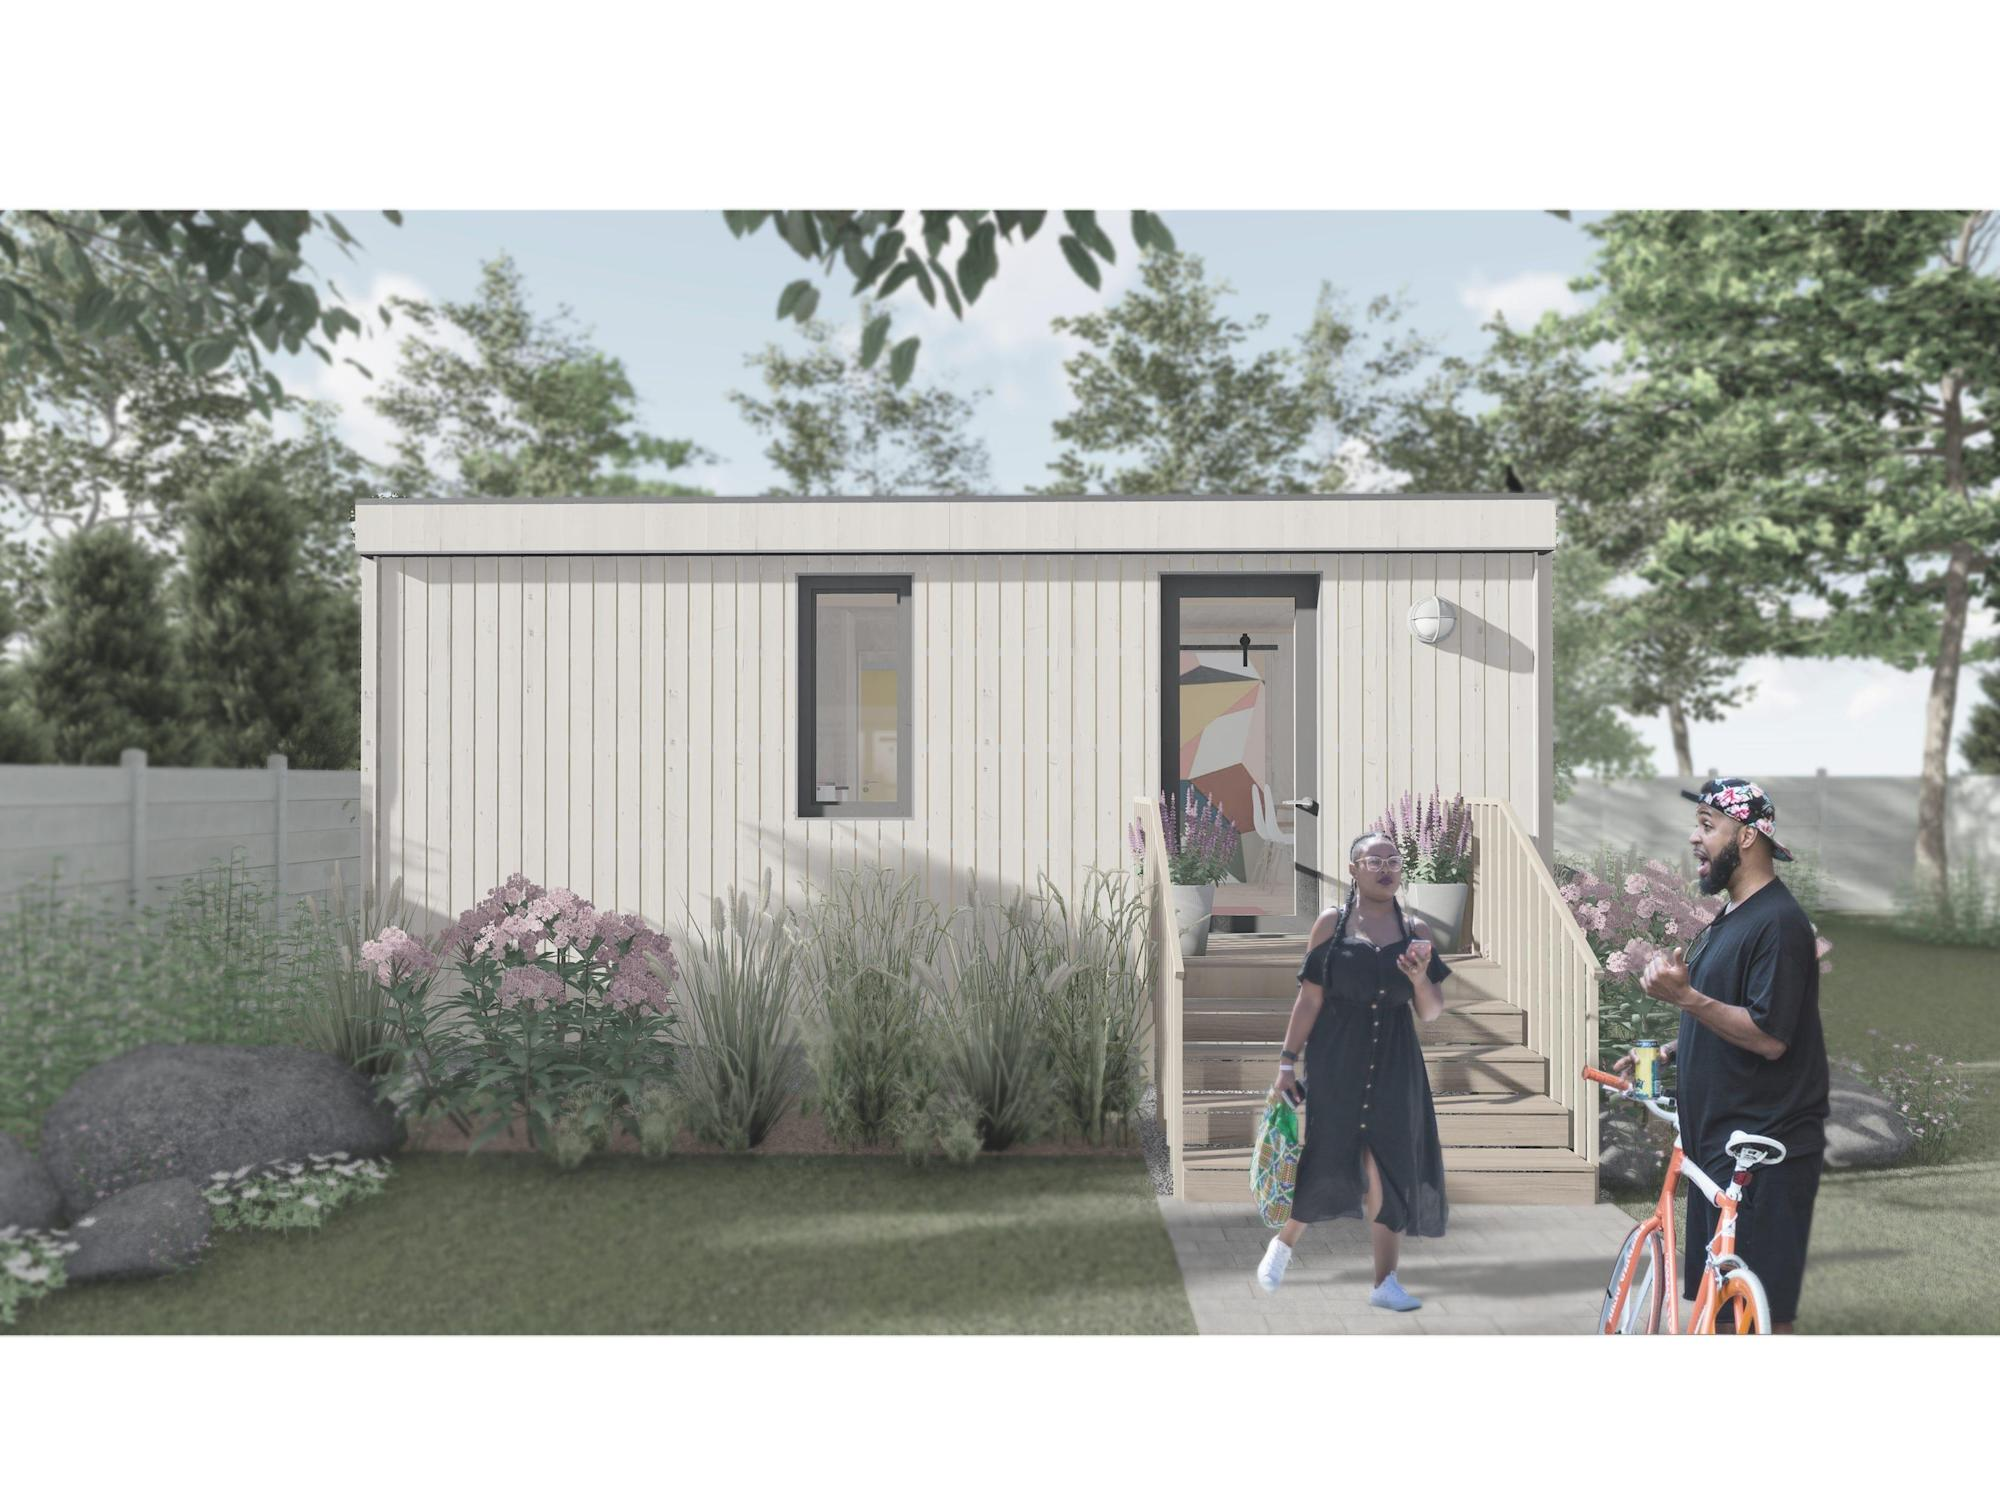 This California company leases backyards for 99 years to build tiny homes and rent them at affordable rates to fight the housing crisis